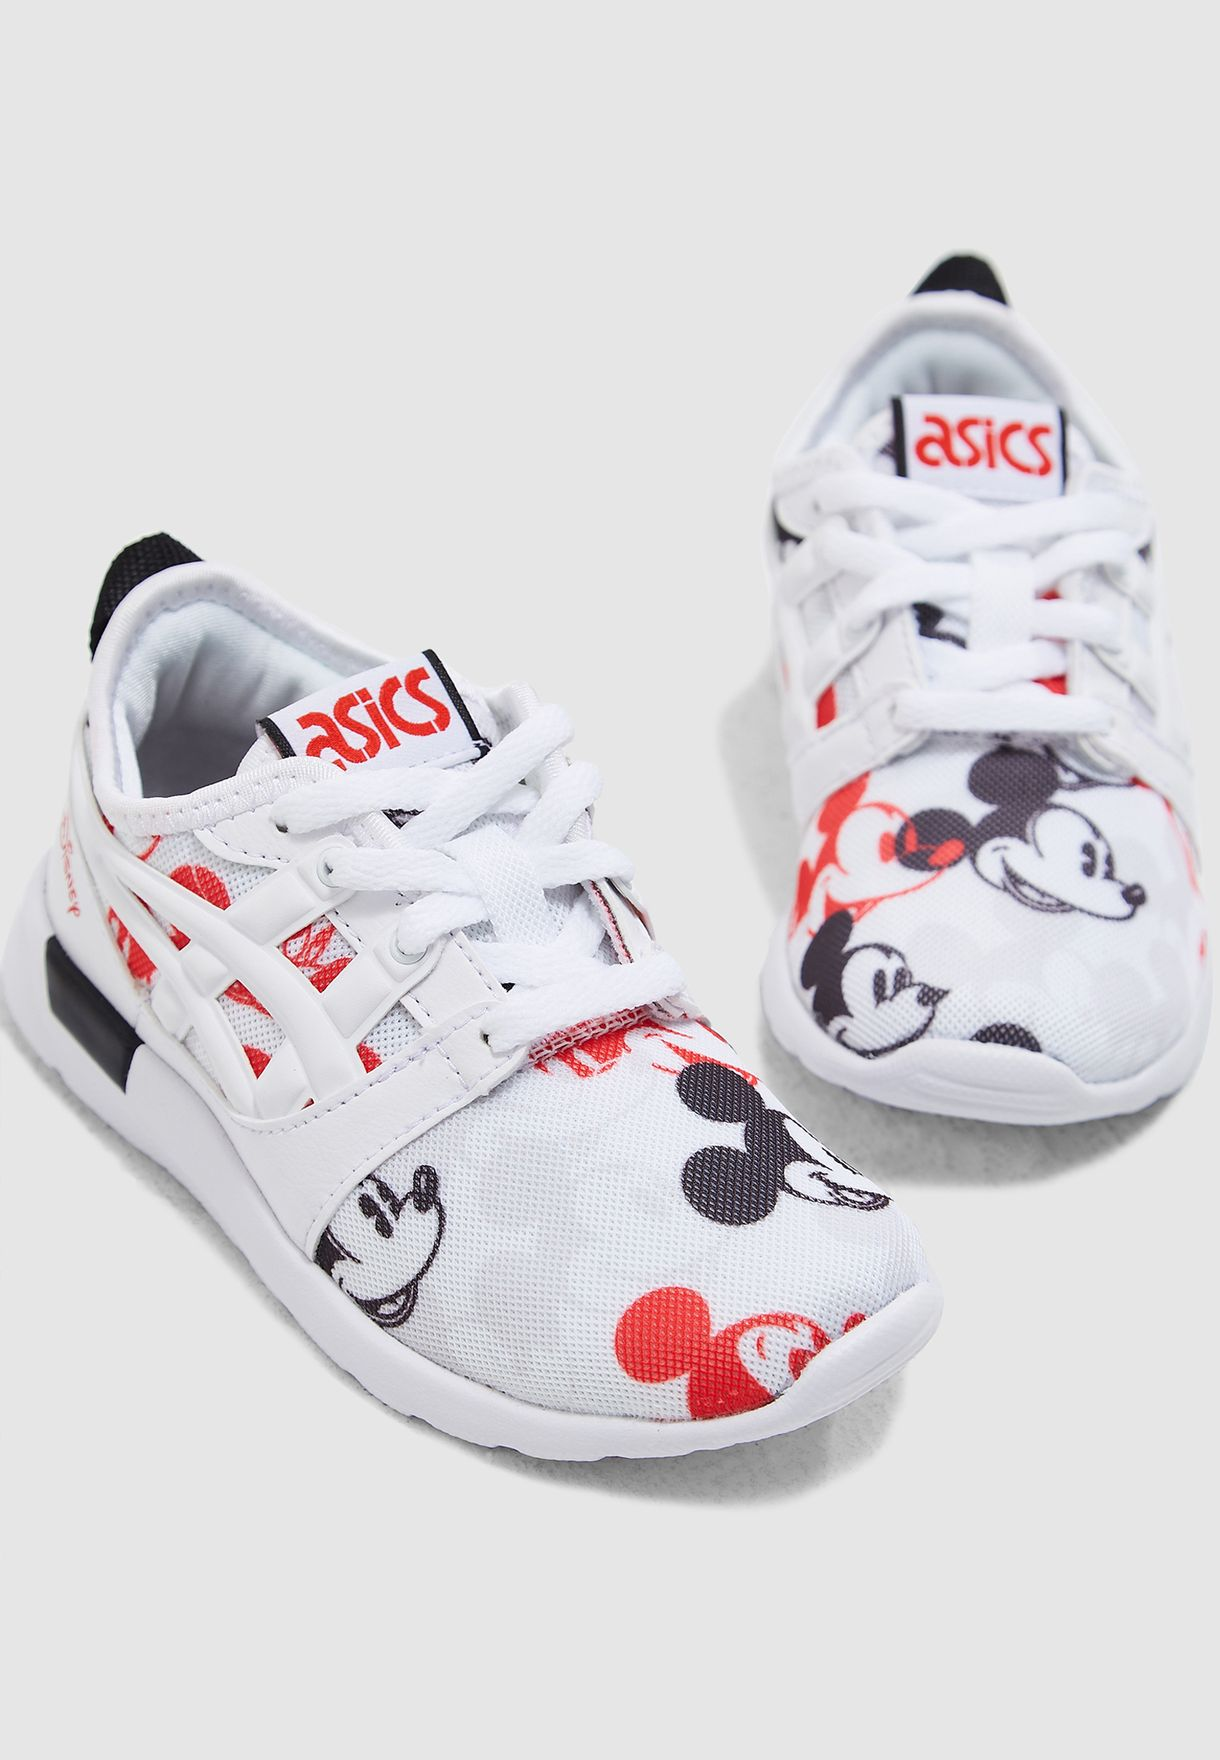 Shop Asics prints Kids GEL-Hikari Mickey 1194a040-100 for Kids in ... 361cc55aacd4